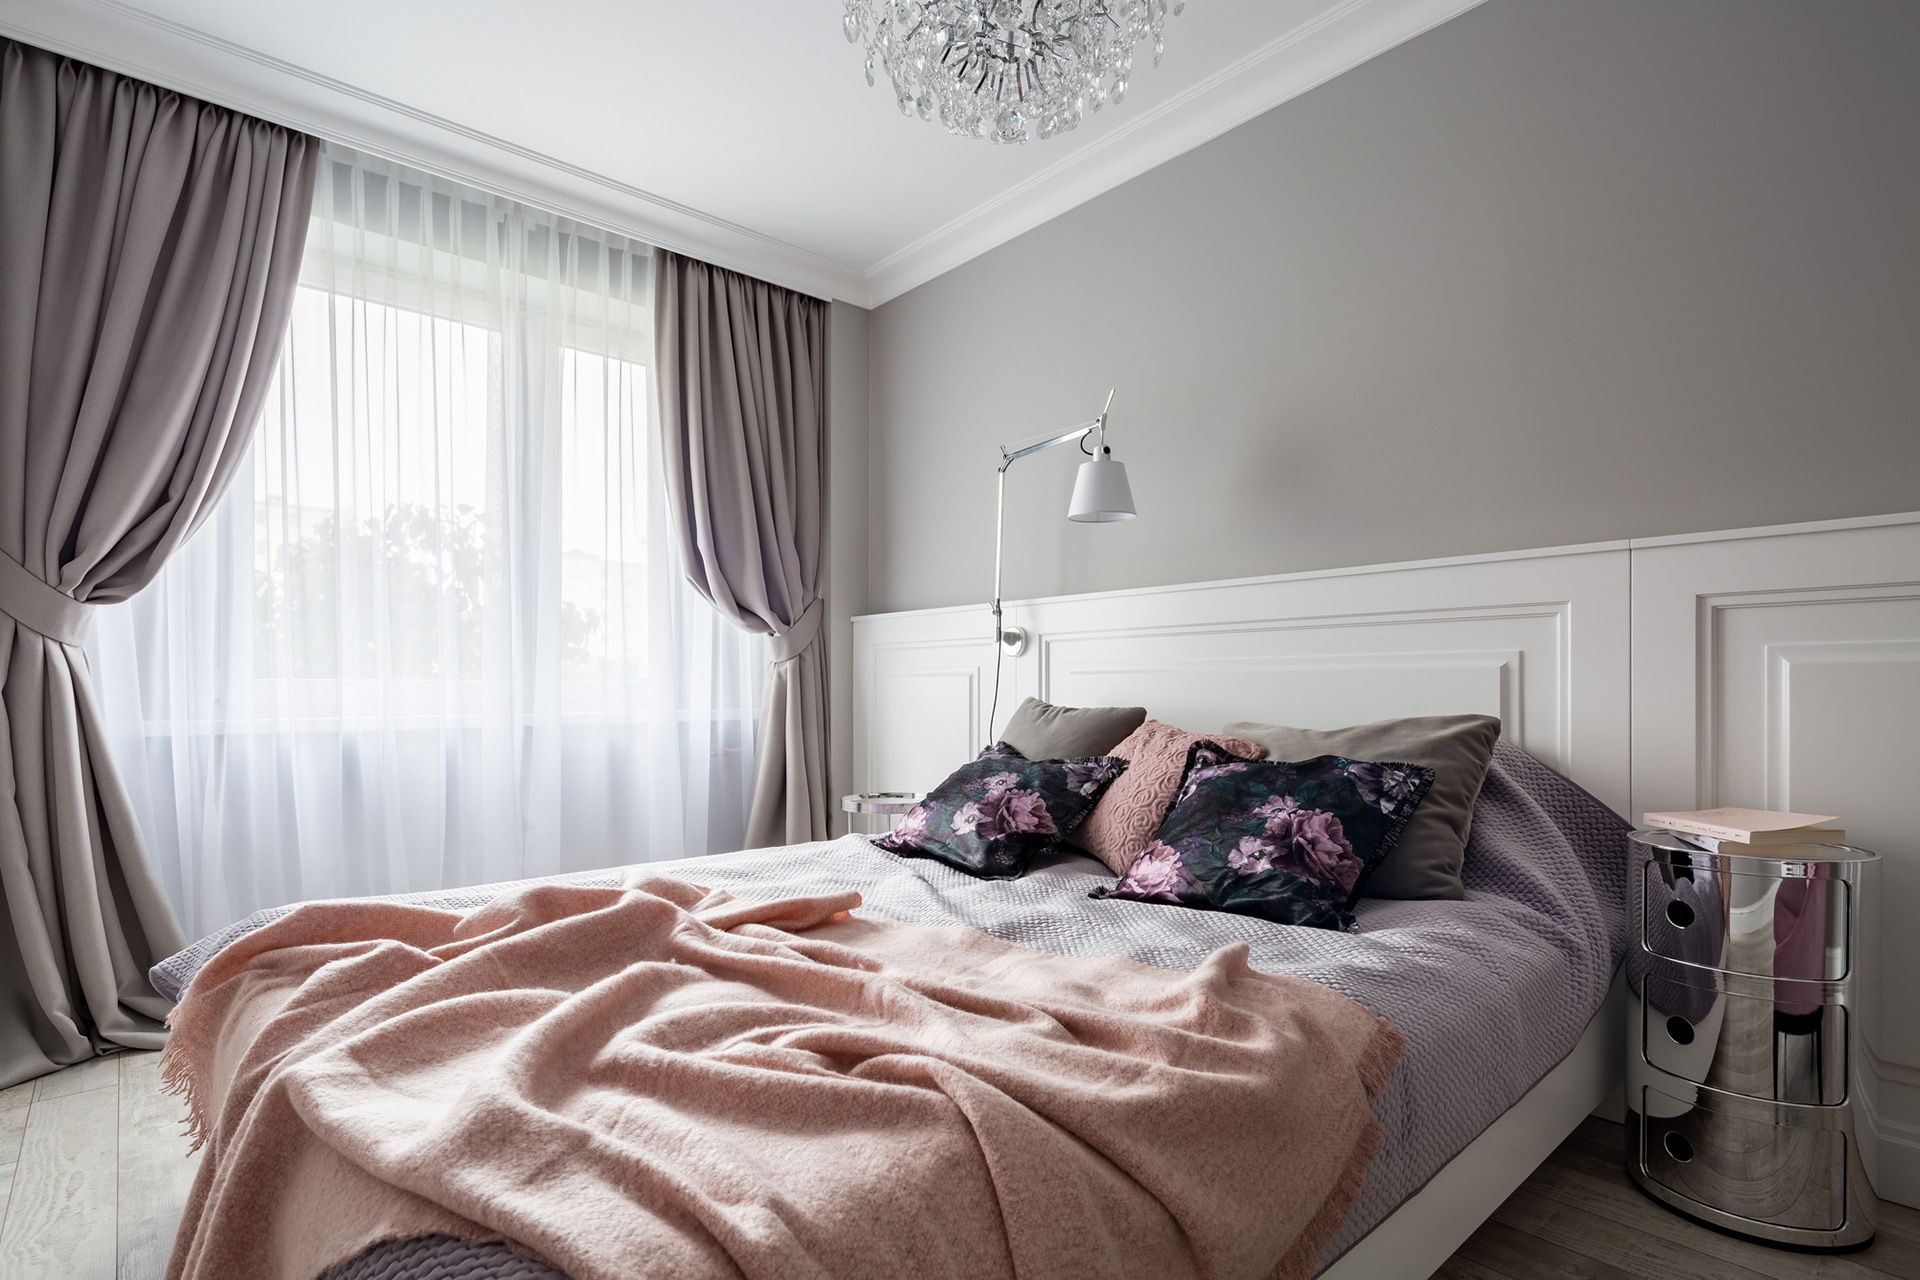 Choose The Perfect Bedroom Curtains For Your Windows Stouffville Glass Blog